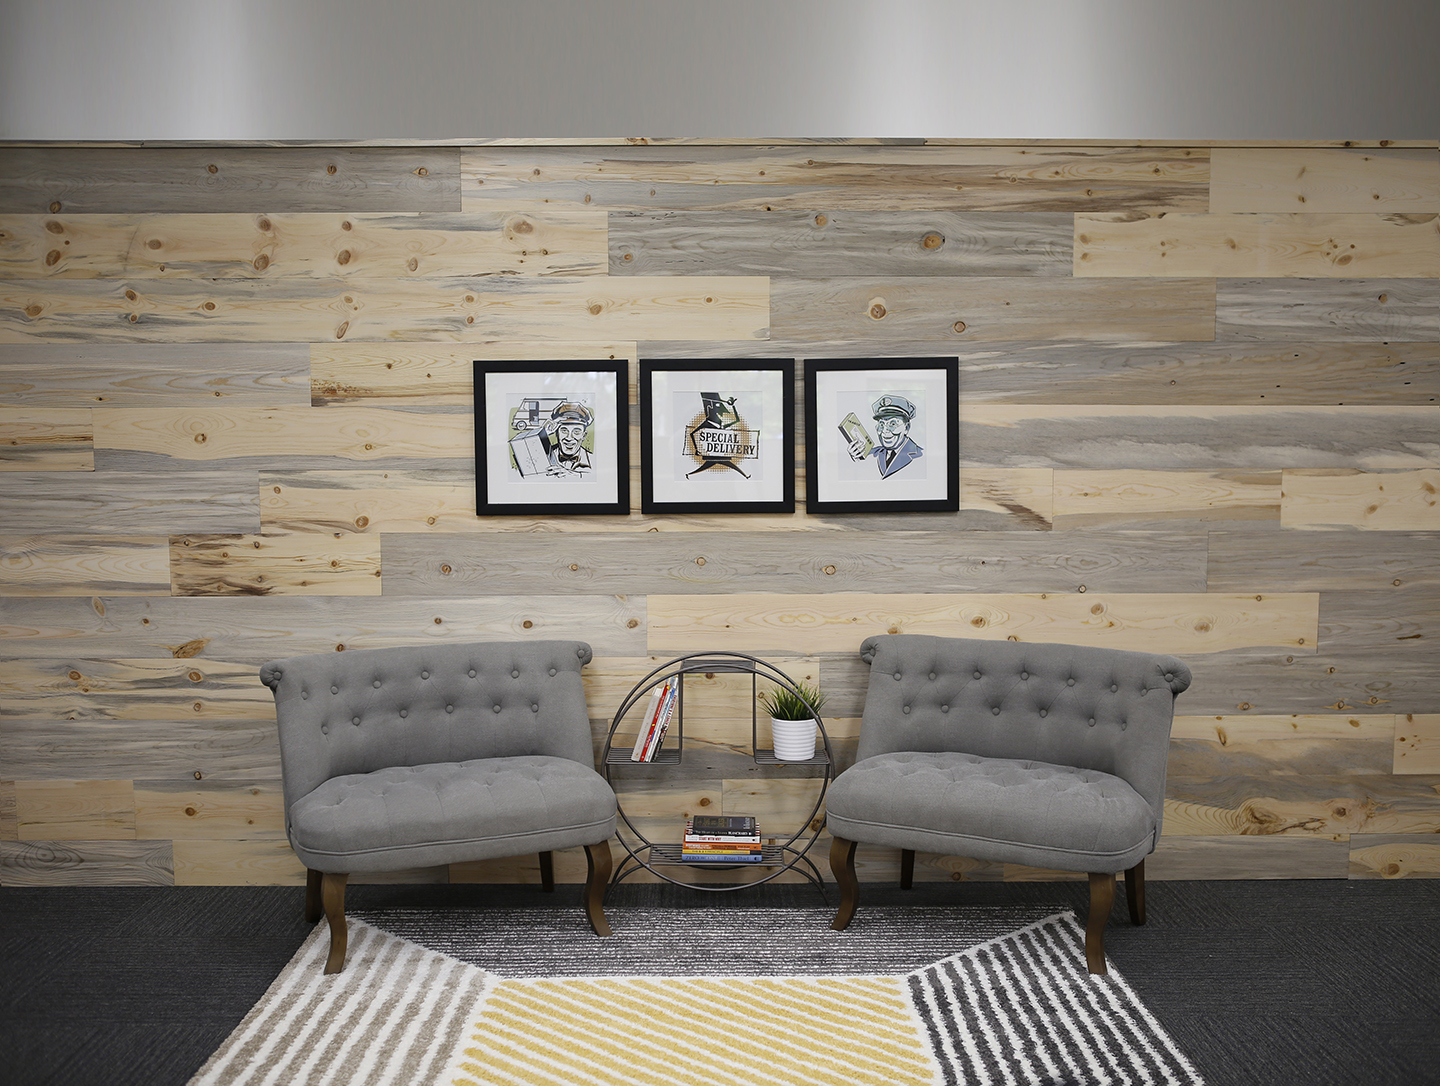 EmagiKit Accent Wall_image.jpg